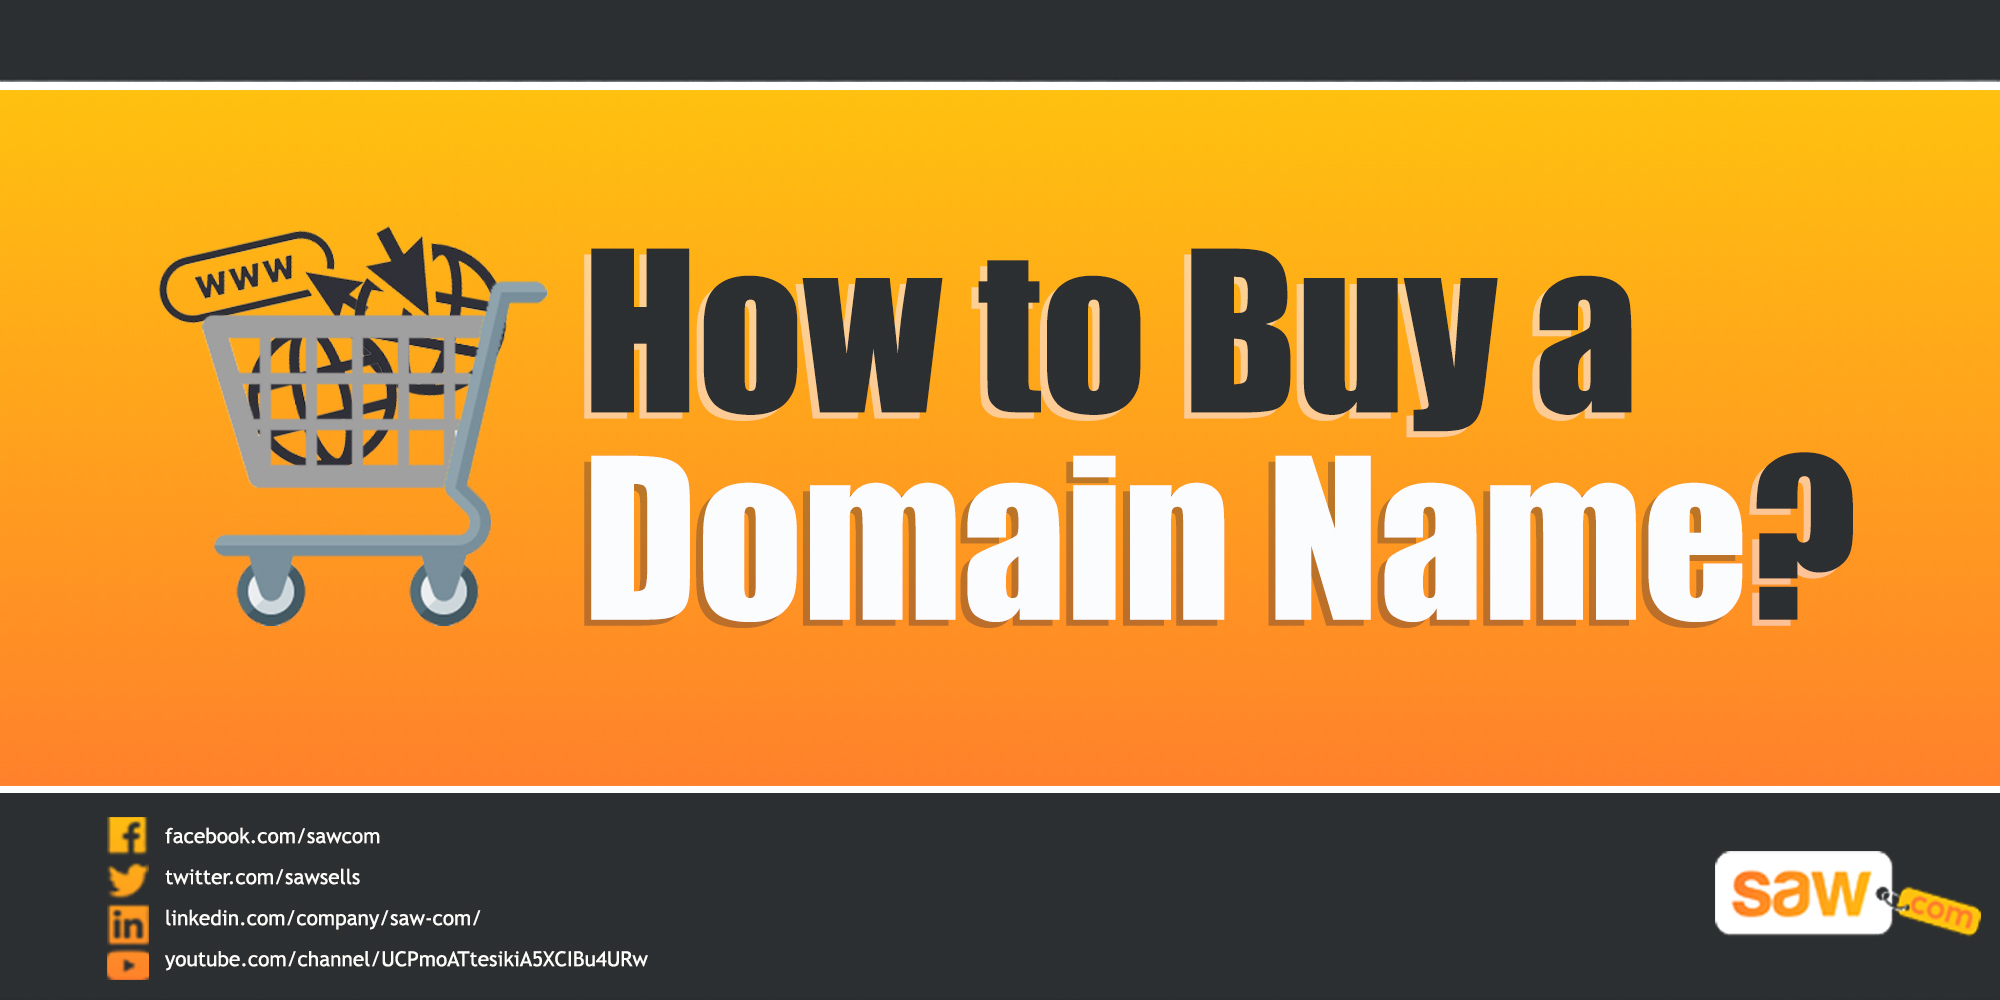 How to Buy a Domain Name